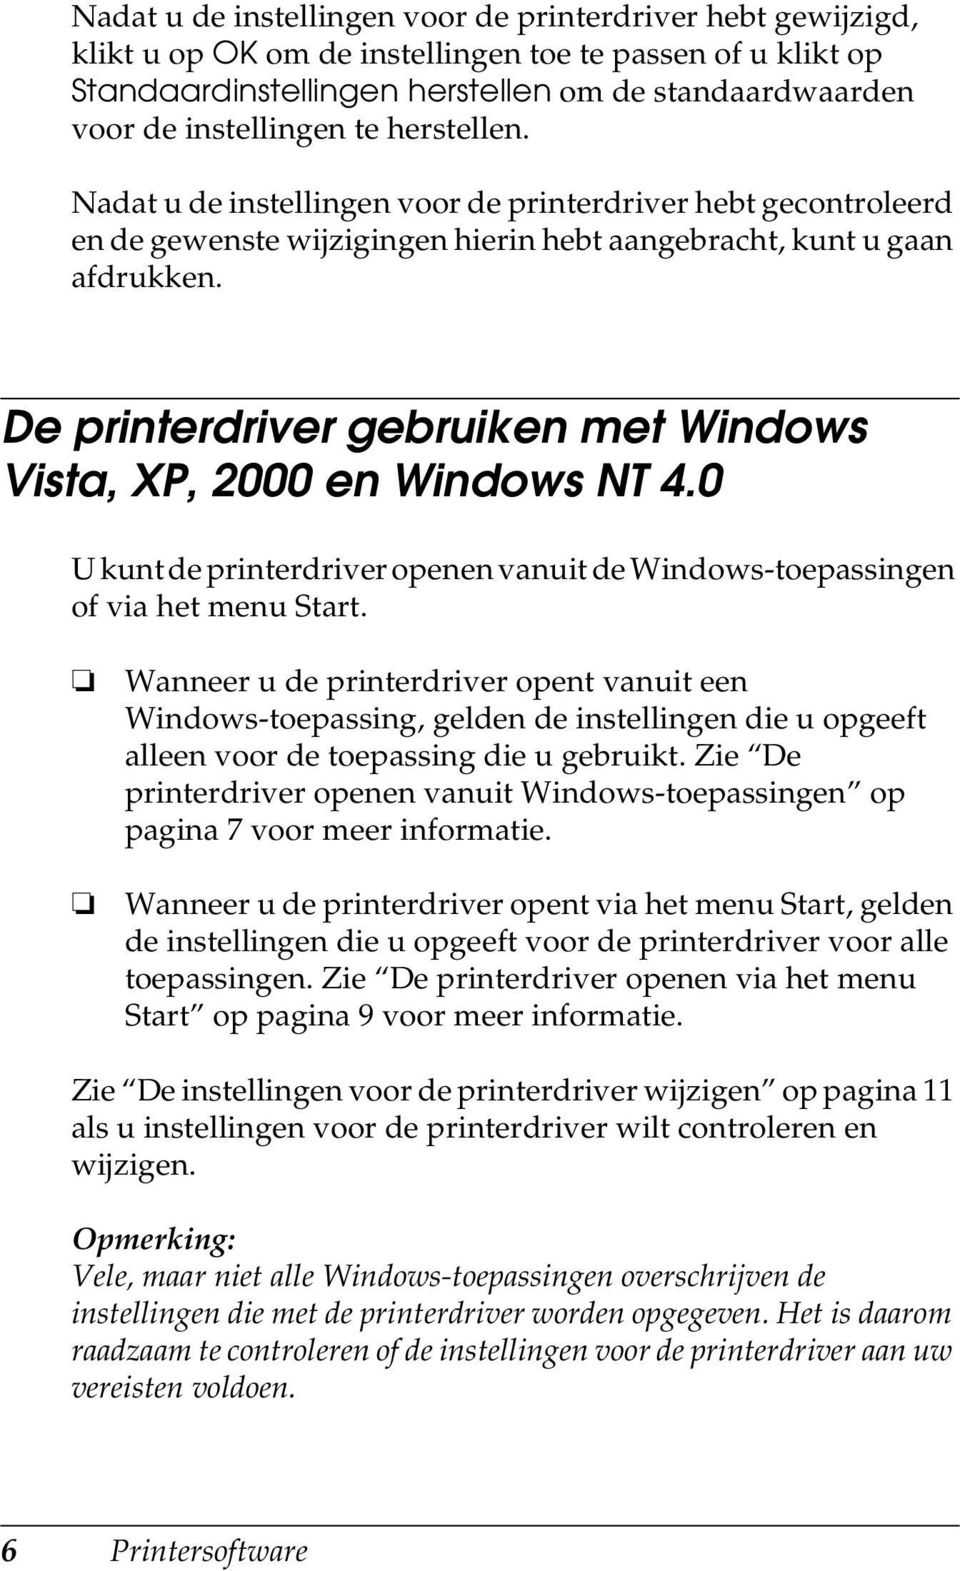 De printerdriver gebruiken met Windows Vista, XP, 2000 en Windows NT 4.0 U kunt de printerdriver openen vanuit de Windows-toepassingen of via het menu Start.